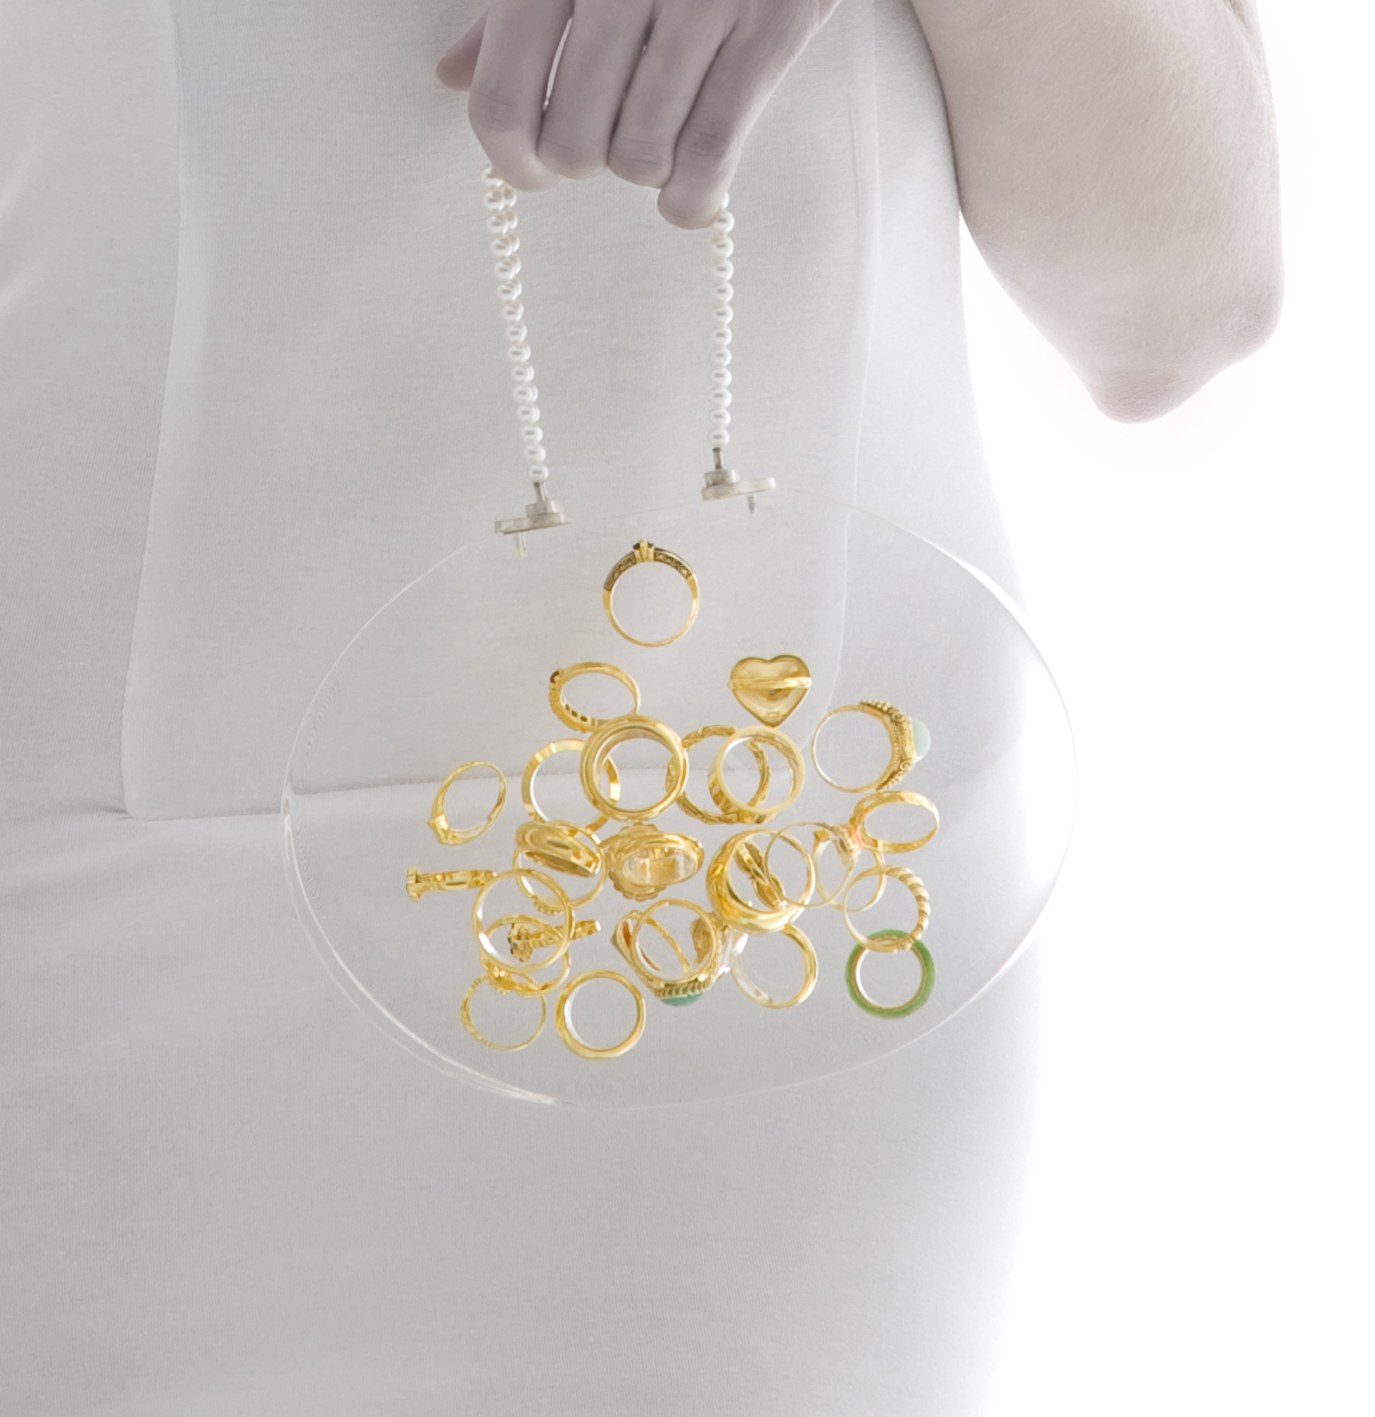 Art Jewelry Forum » Ted Noten wins Artist of the Year 2012 | GREATER